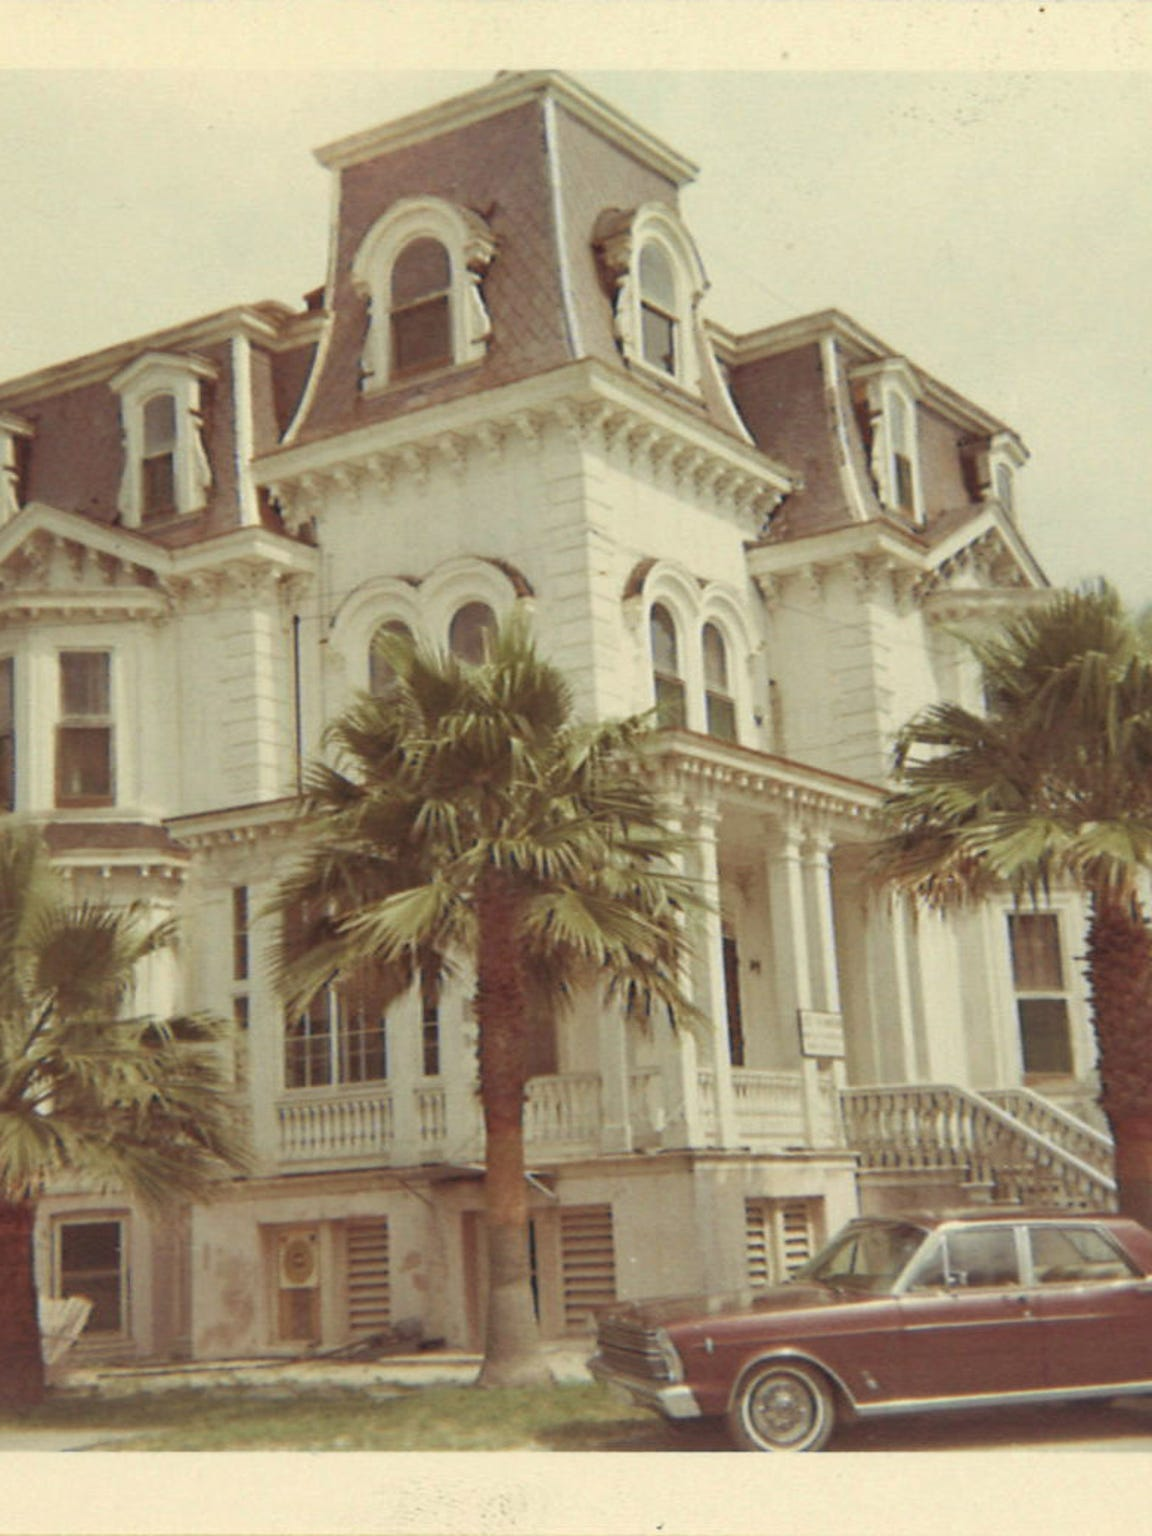 The exterior of Fulton Mansion in November 1967.